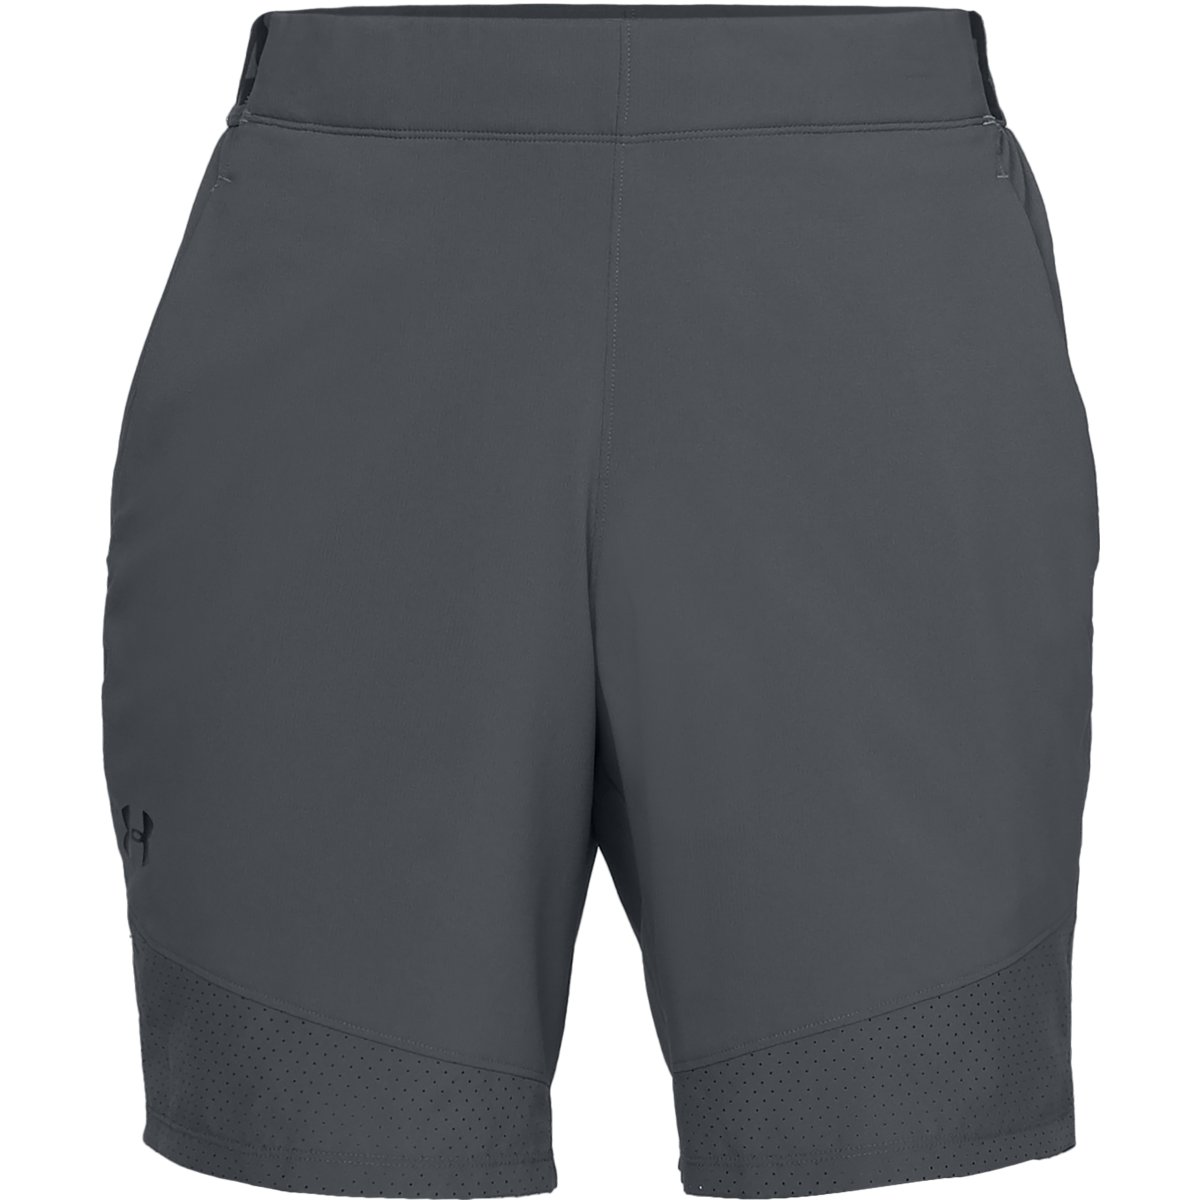 Under Armour Vanish Woven Short | Amour